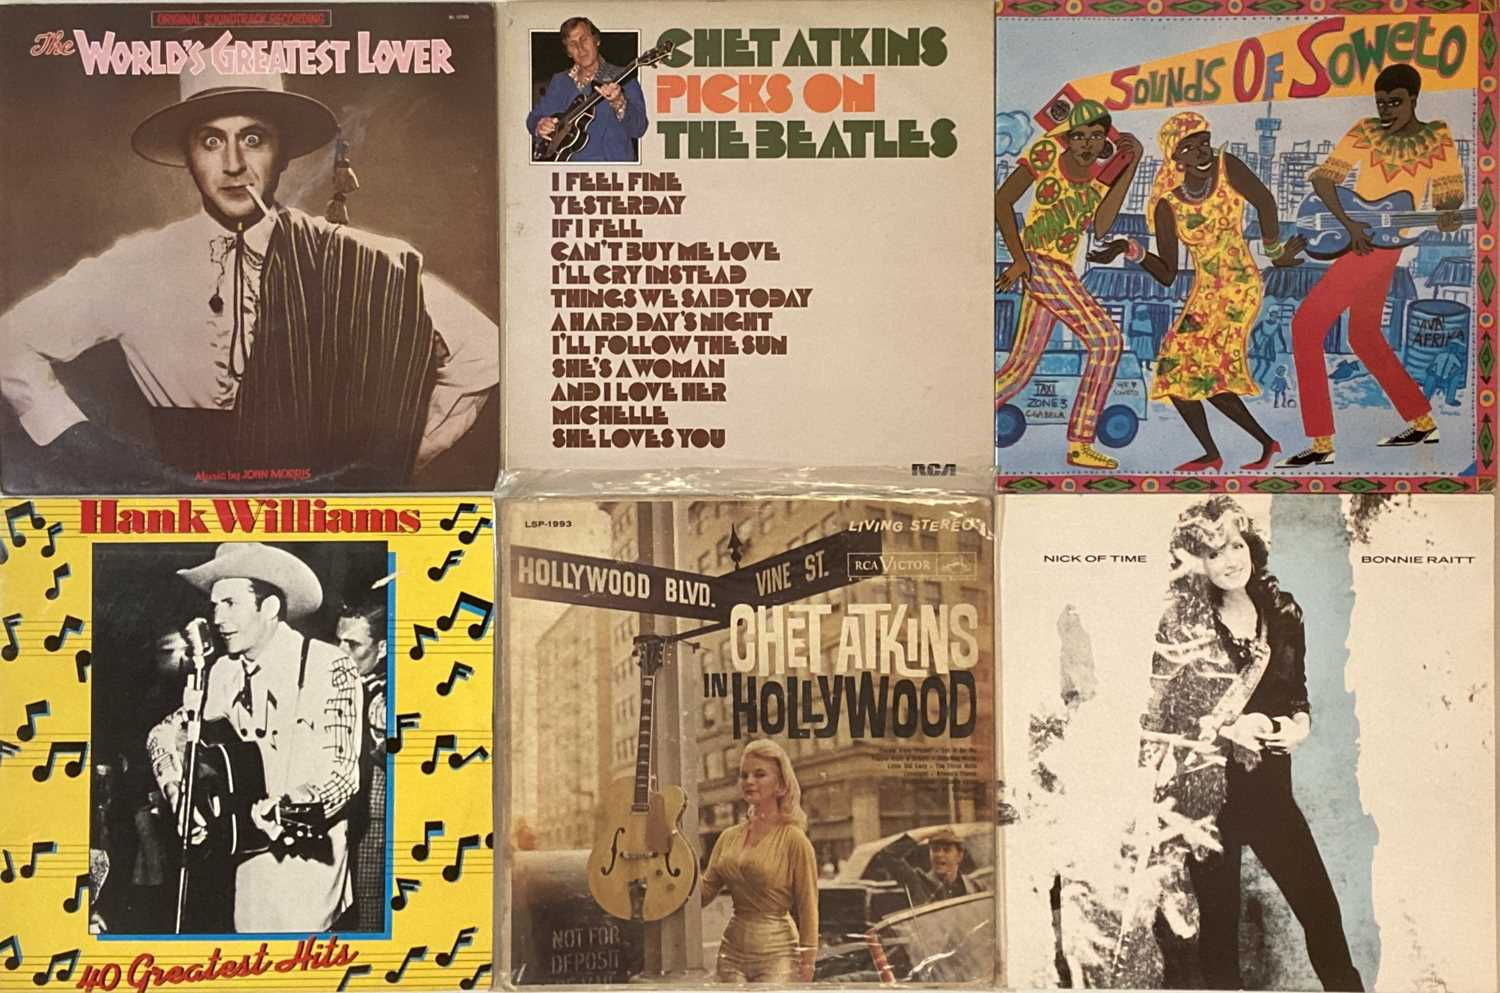 ROCK N ROLL/ JAZZ/ GUITAR SPECIALISTS - LPs - Image 5 of 5